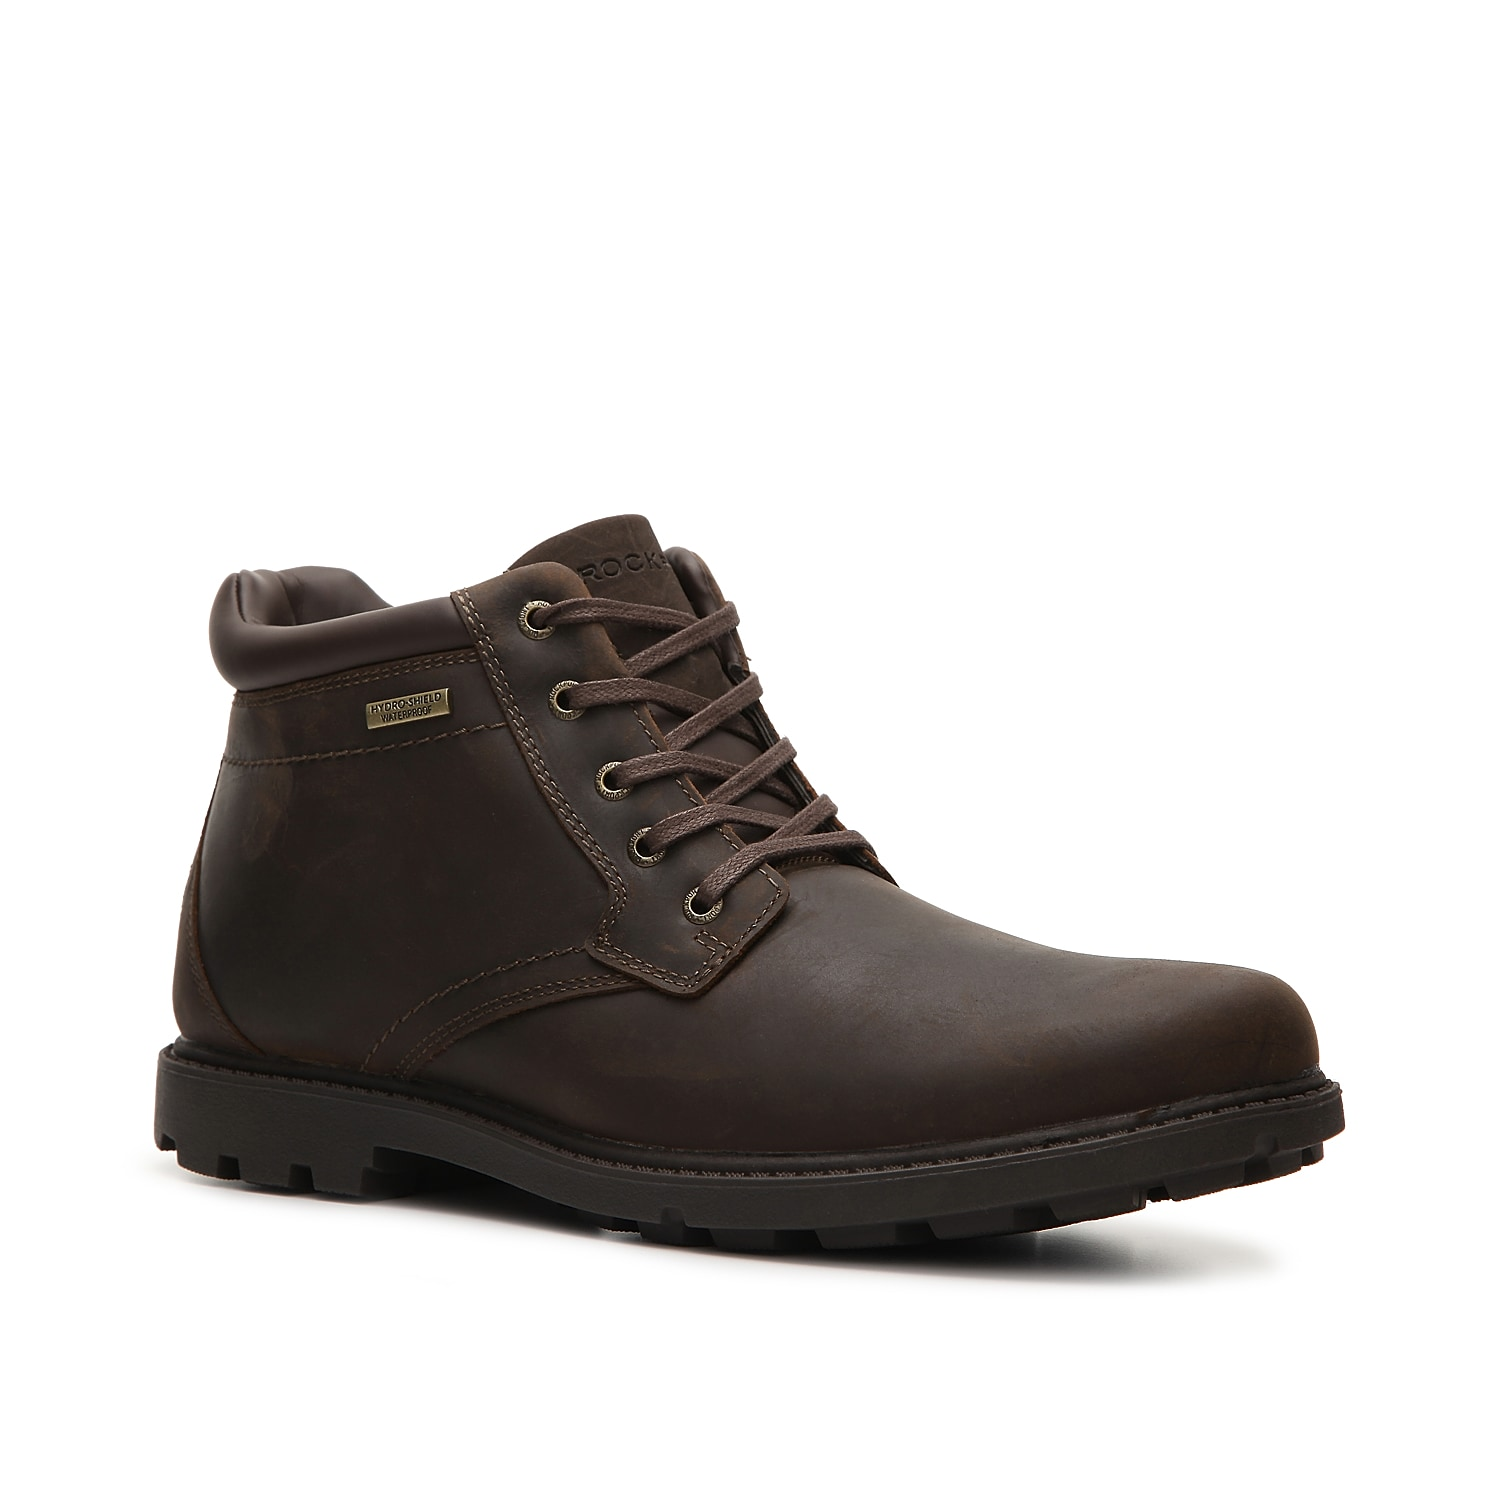 Walk in confidence no matter what the weather sends your way with the Storm Surge chukka boot from Rockport. This waterproof, leather lace-up features technology which provides superior cushioning and comfort!